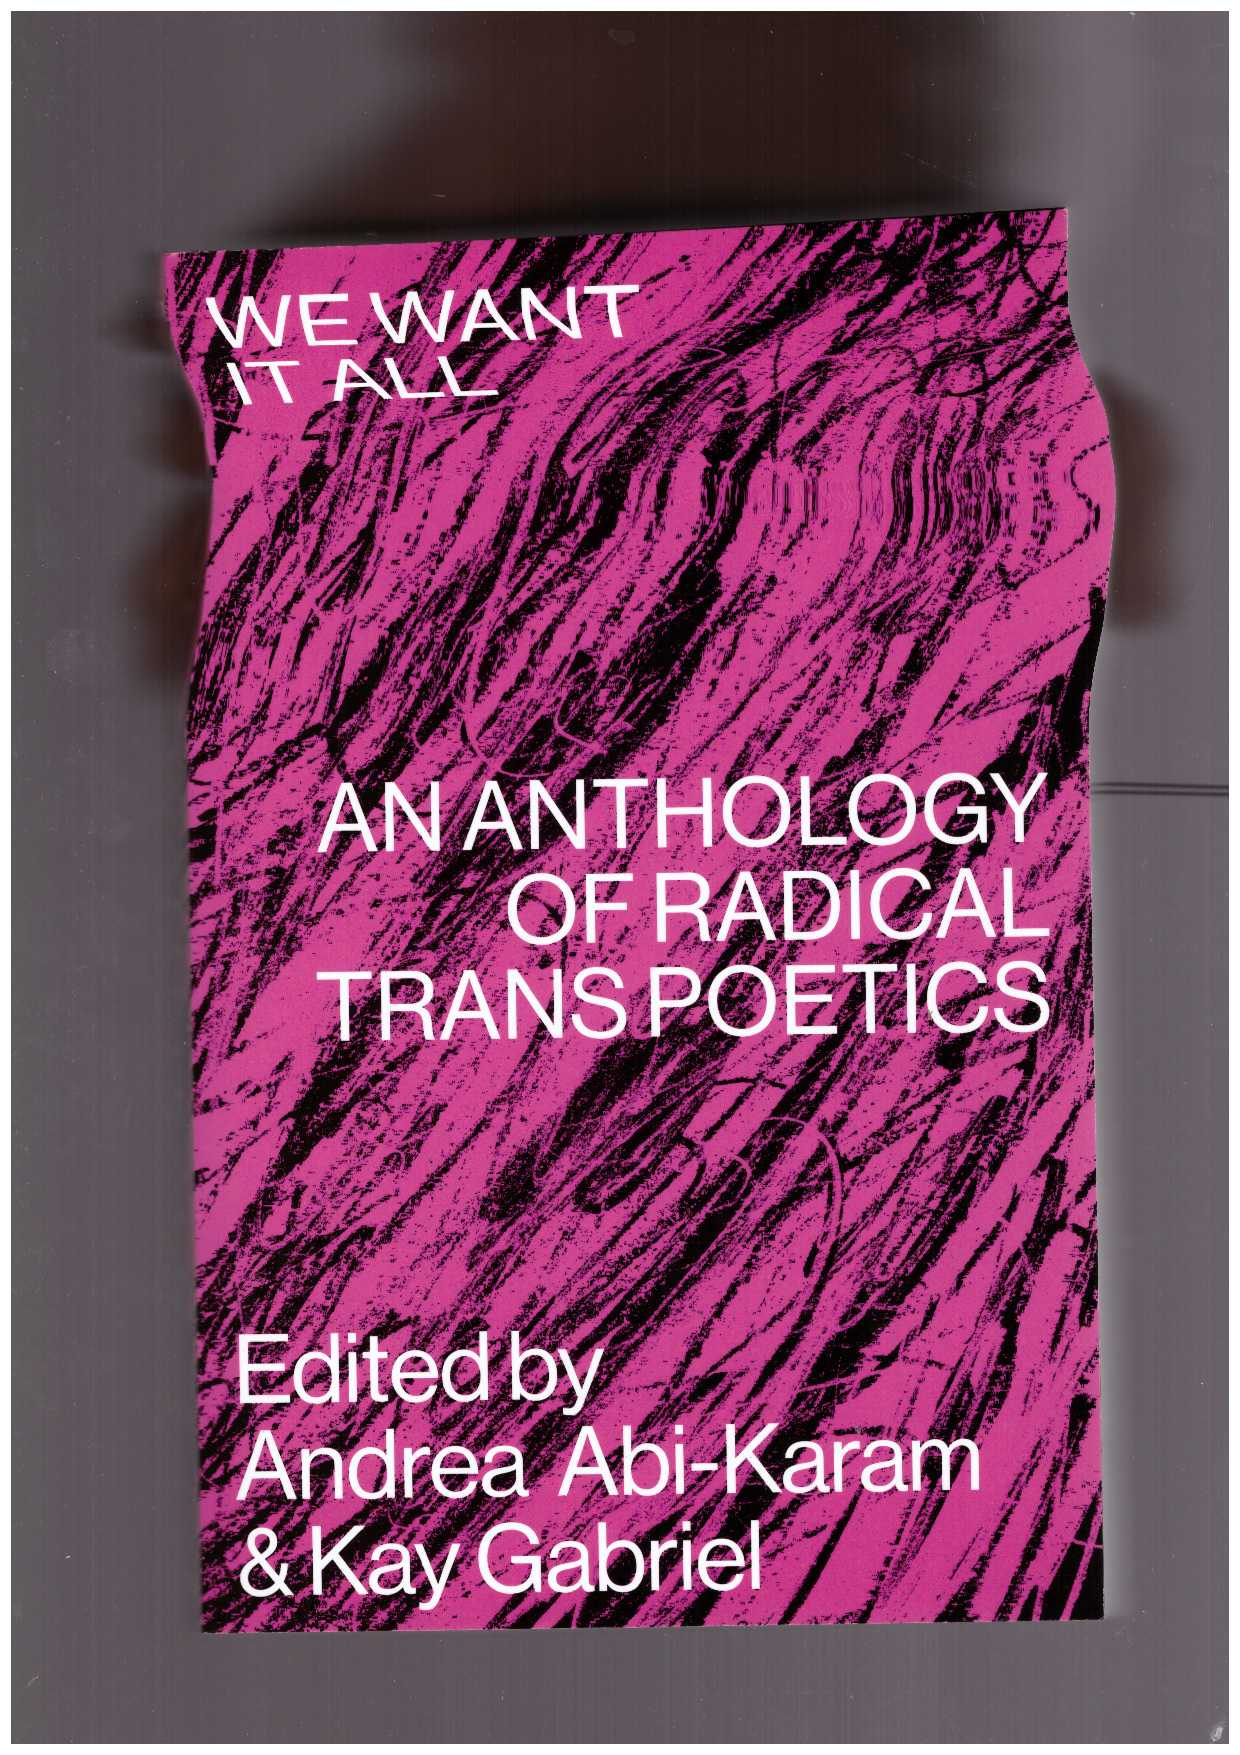 ABI-KARAM, Andrea ; GABRIEL, Kay (eds.) - We Want it All: An Anthology of Radical Trans Poetics